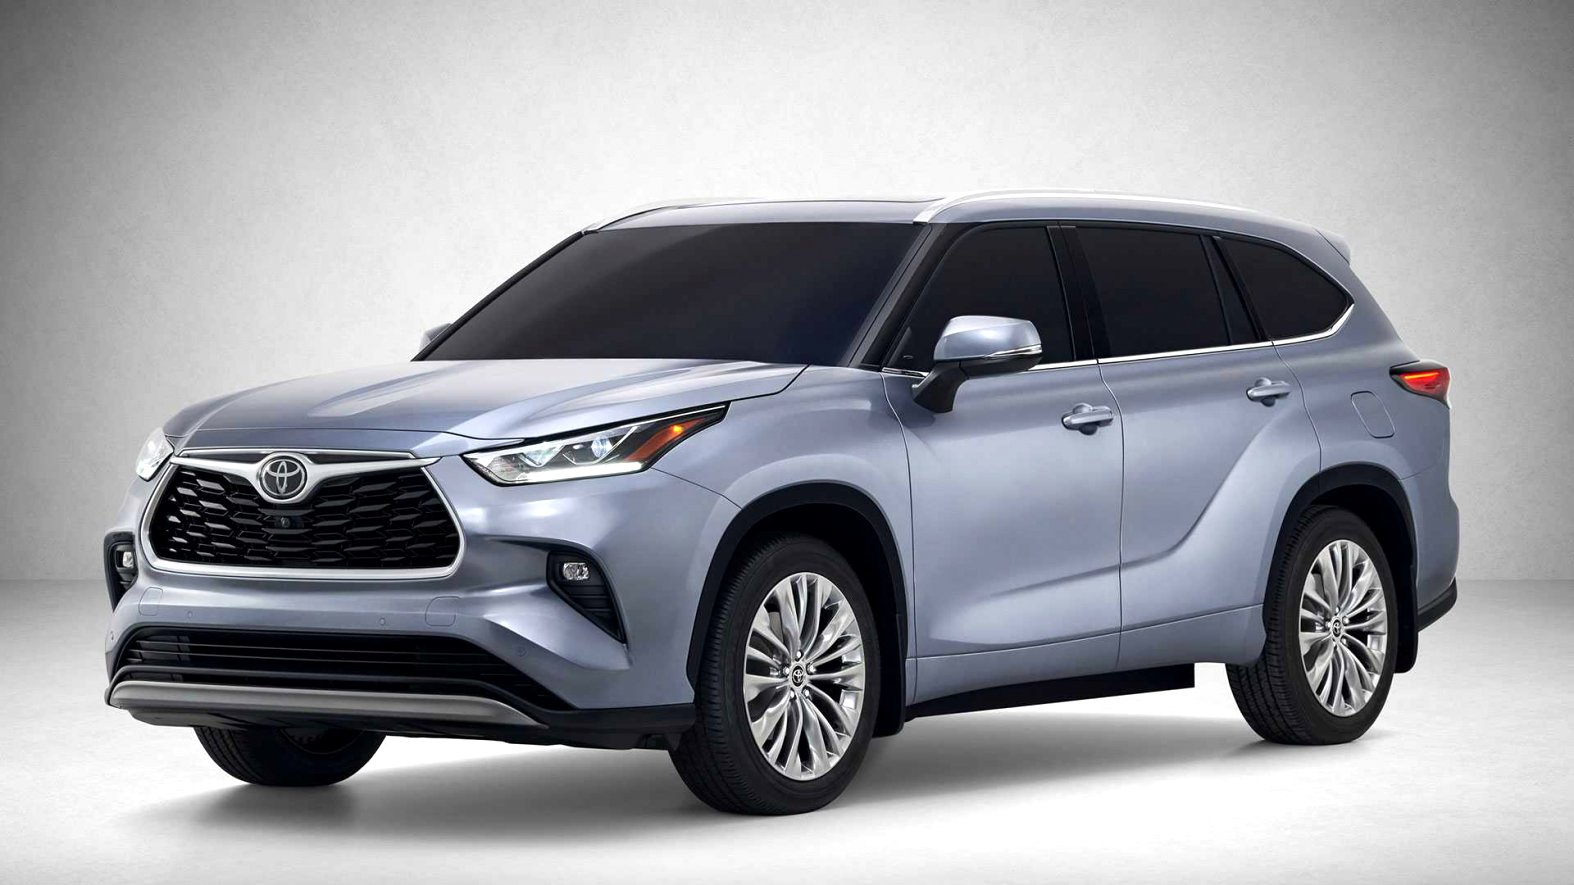 2020 toyota highlander review Concept